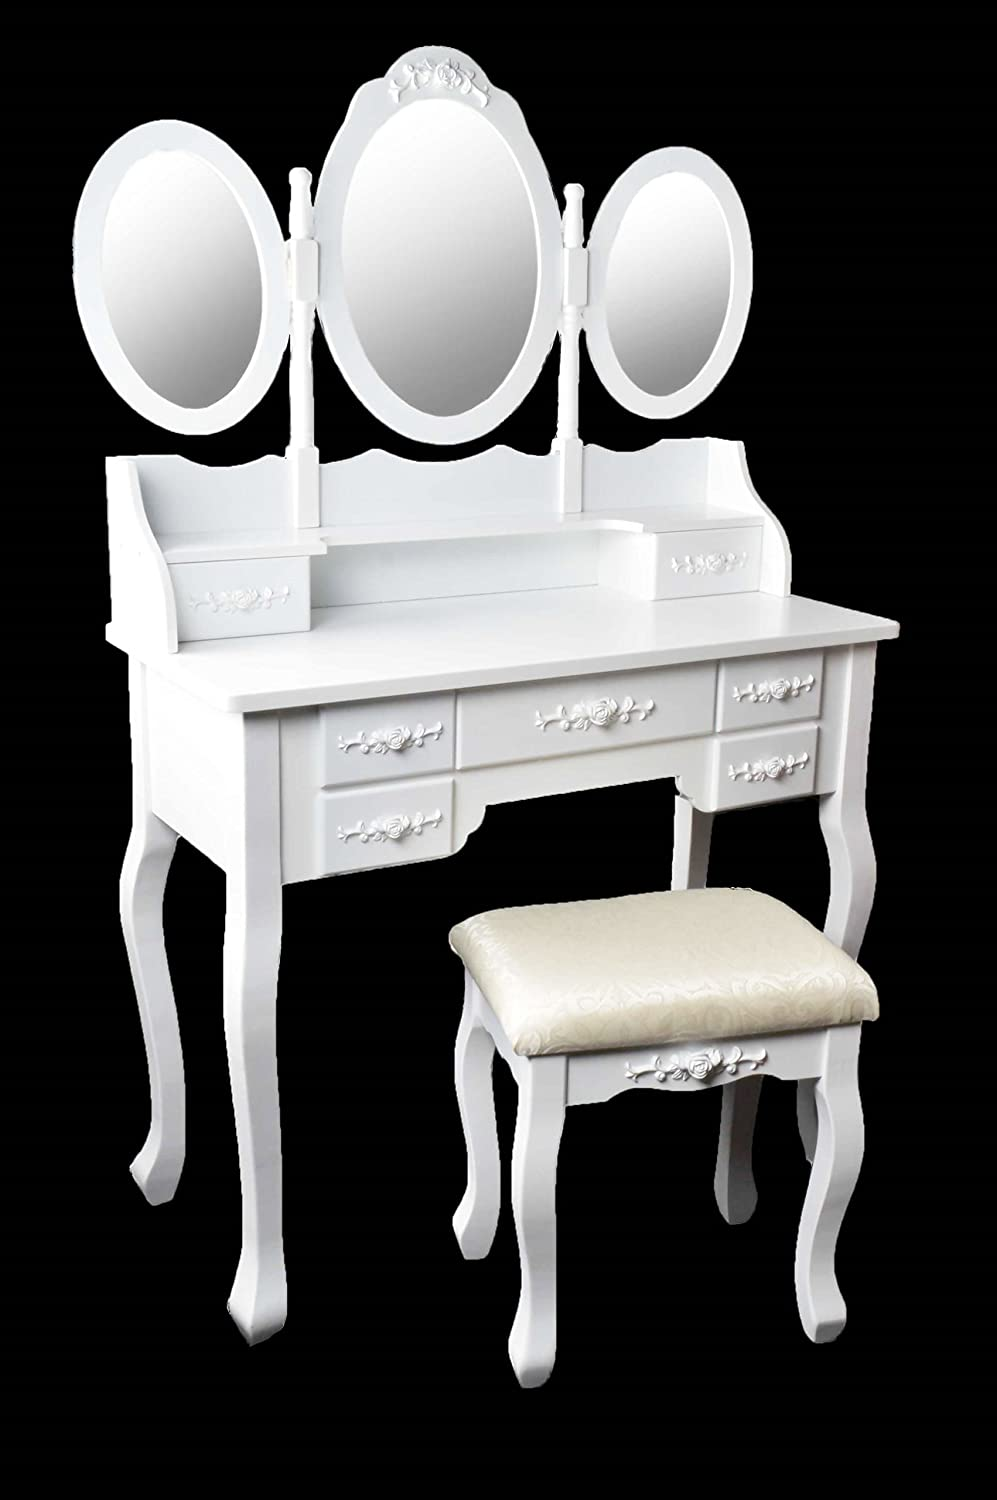 coiffeuse miroir tabouret maison design. Black Bedroom Furniture Sets. Home Design Ideas